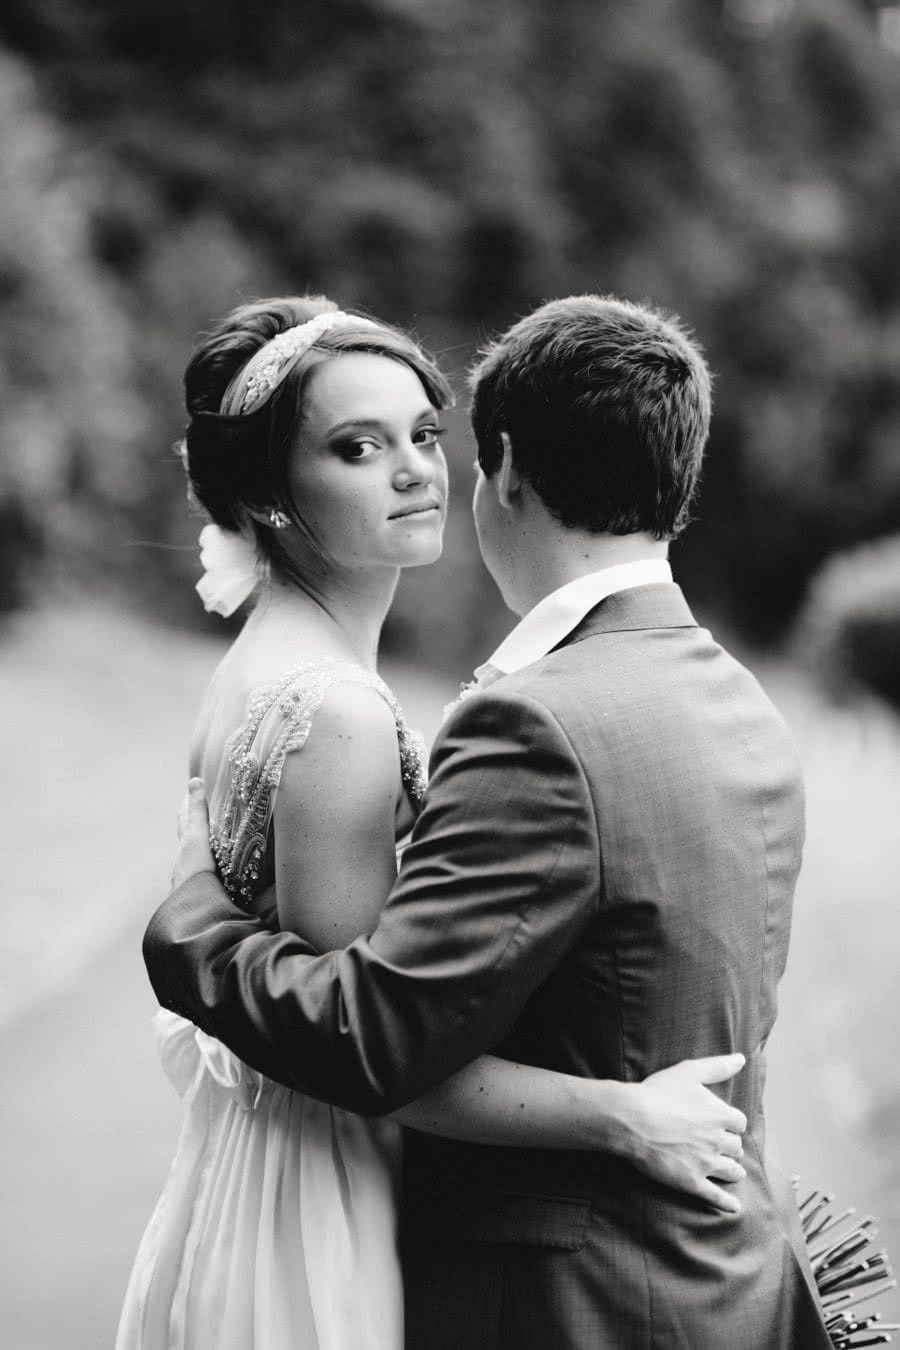 maleny_manor_elopement_scott_and_kylie042